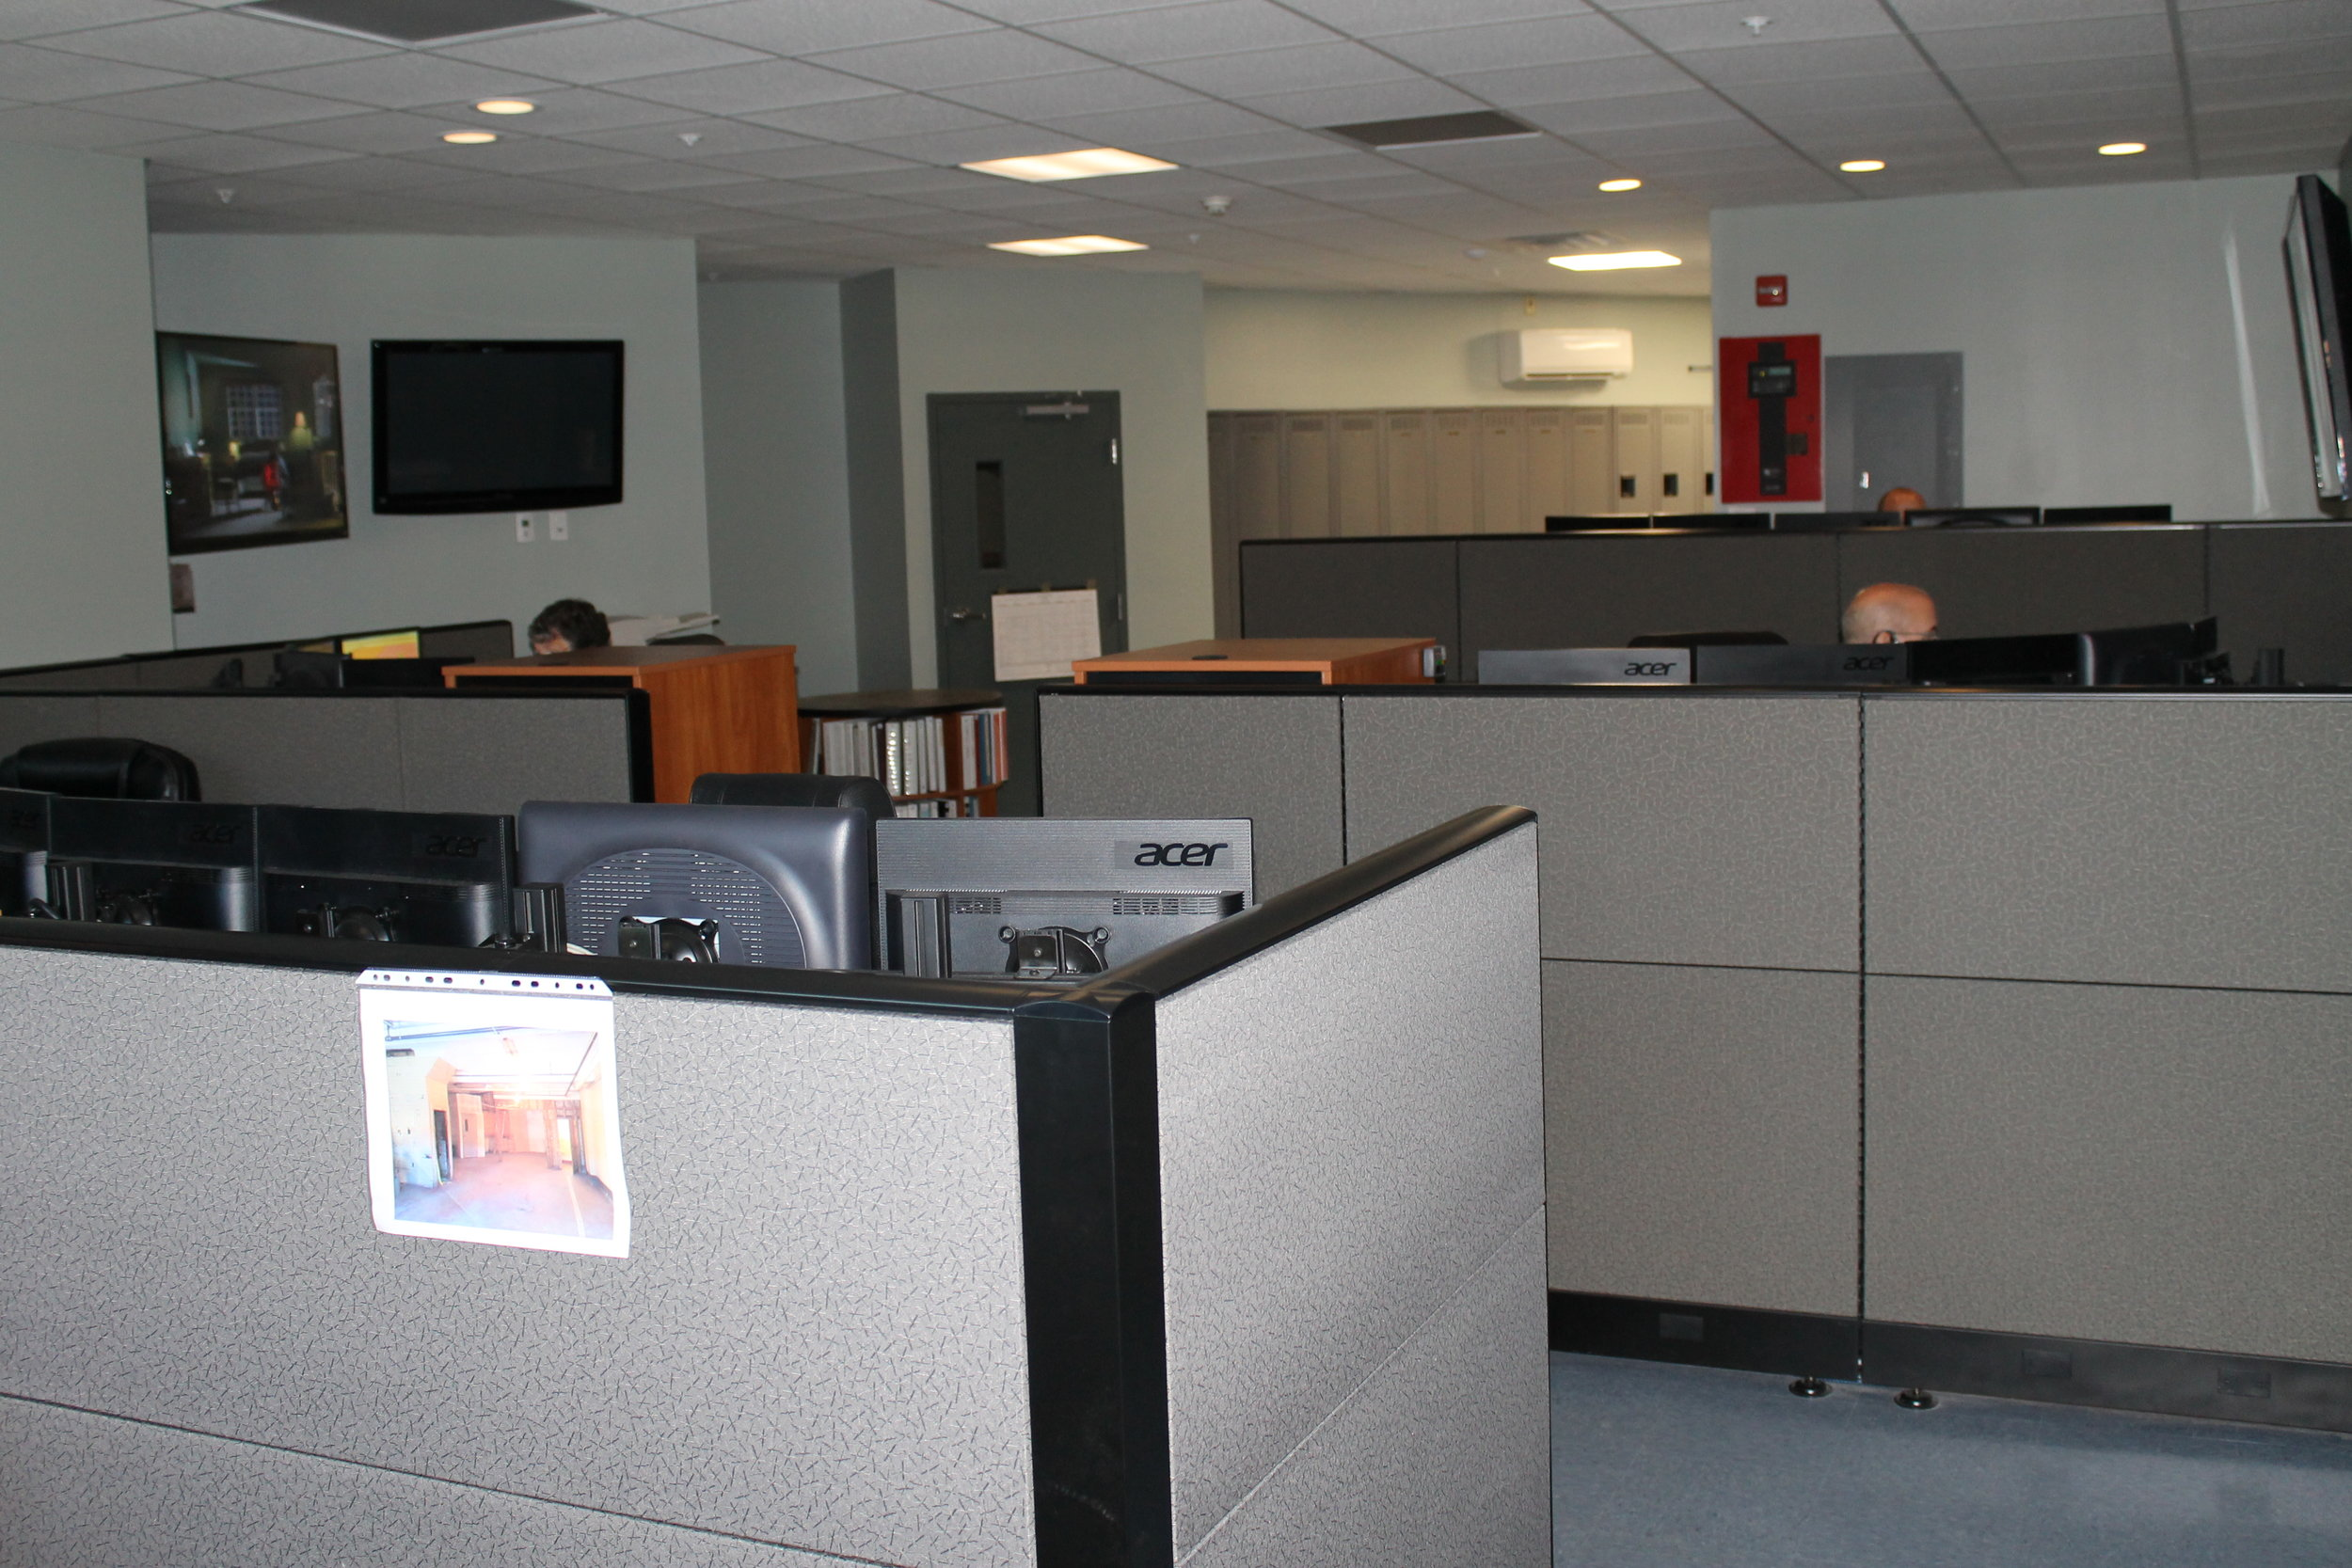 Overview of dispatch center